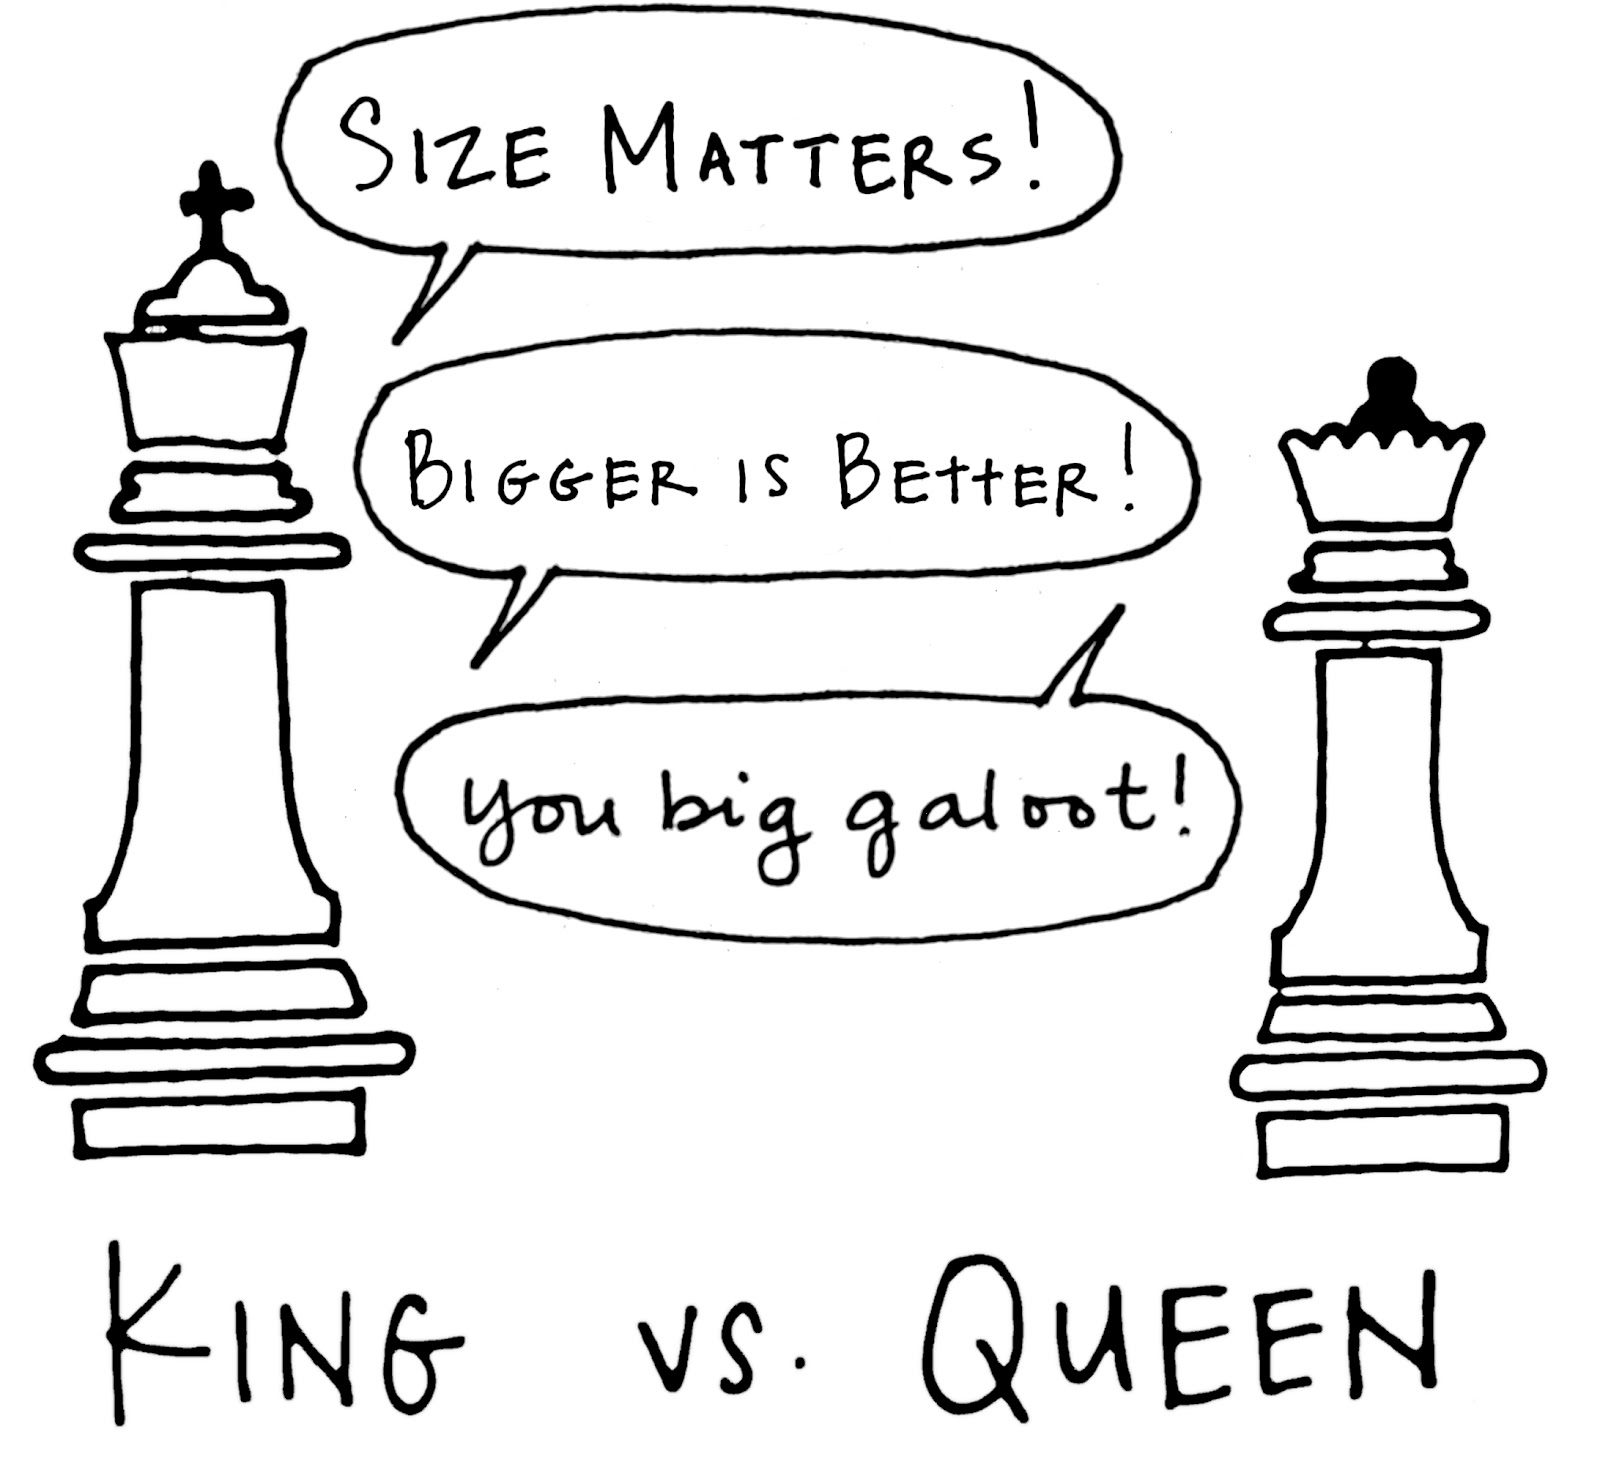 Double bed size vs queen - King Vs Queen